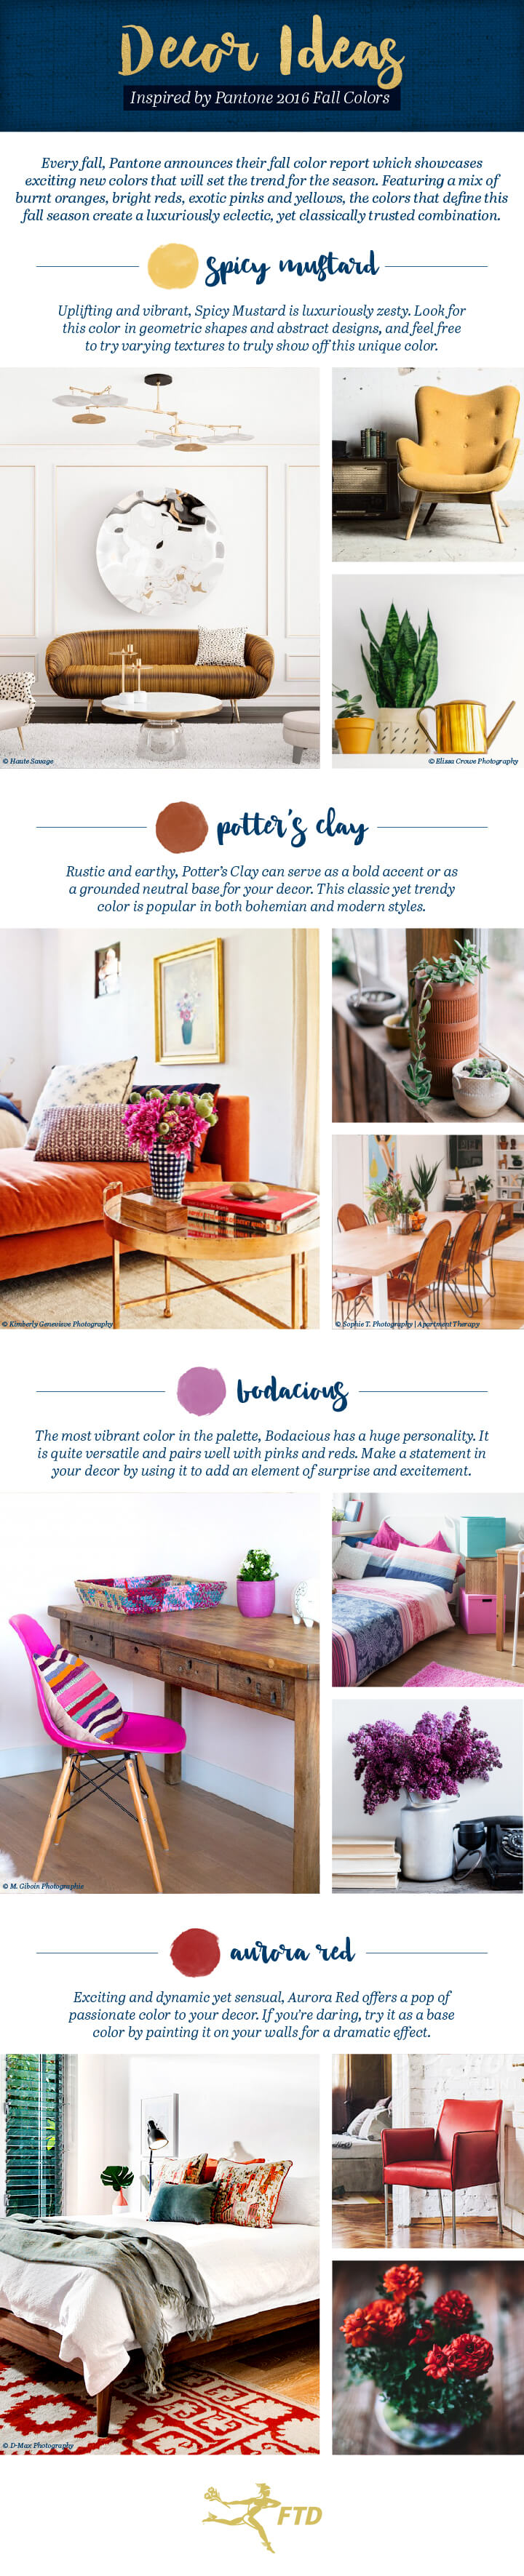 pantone-fall-decor-ideas